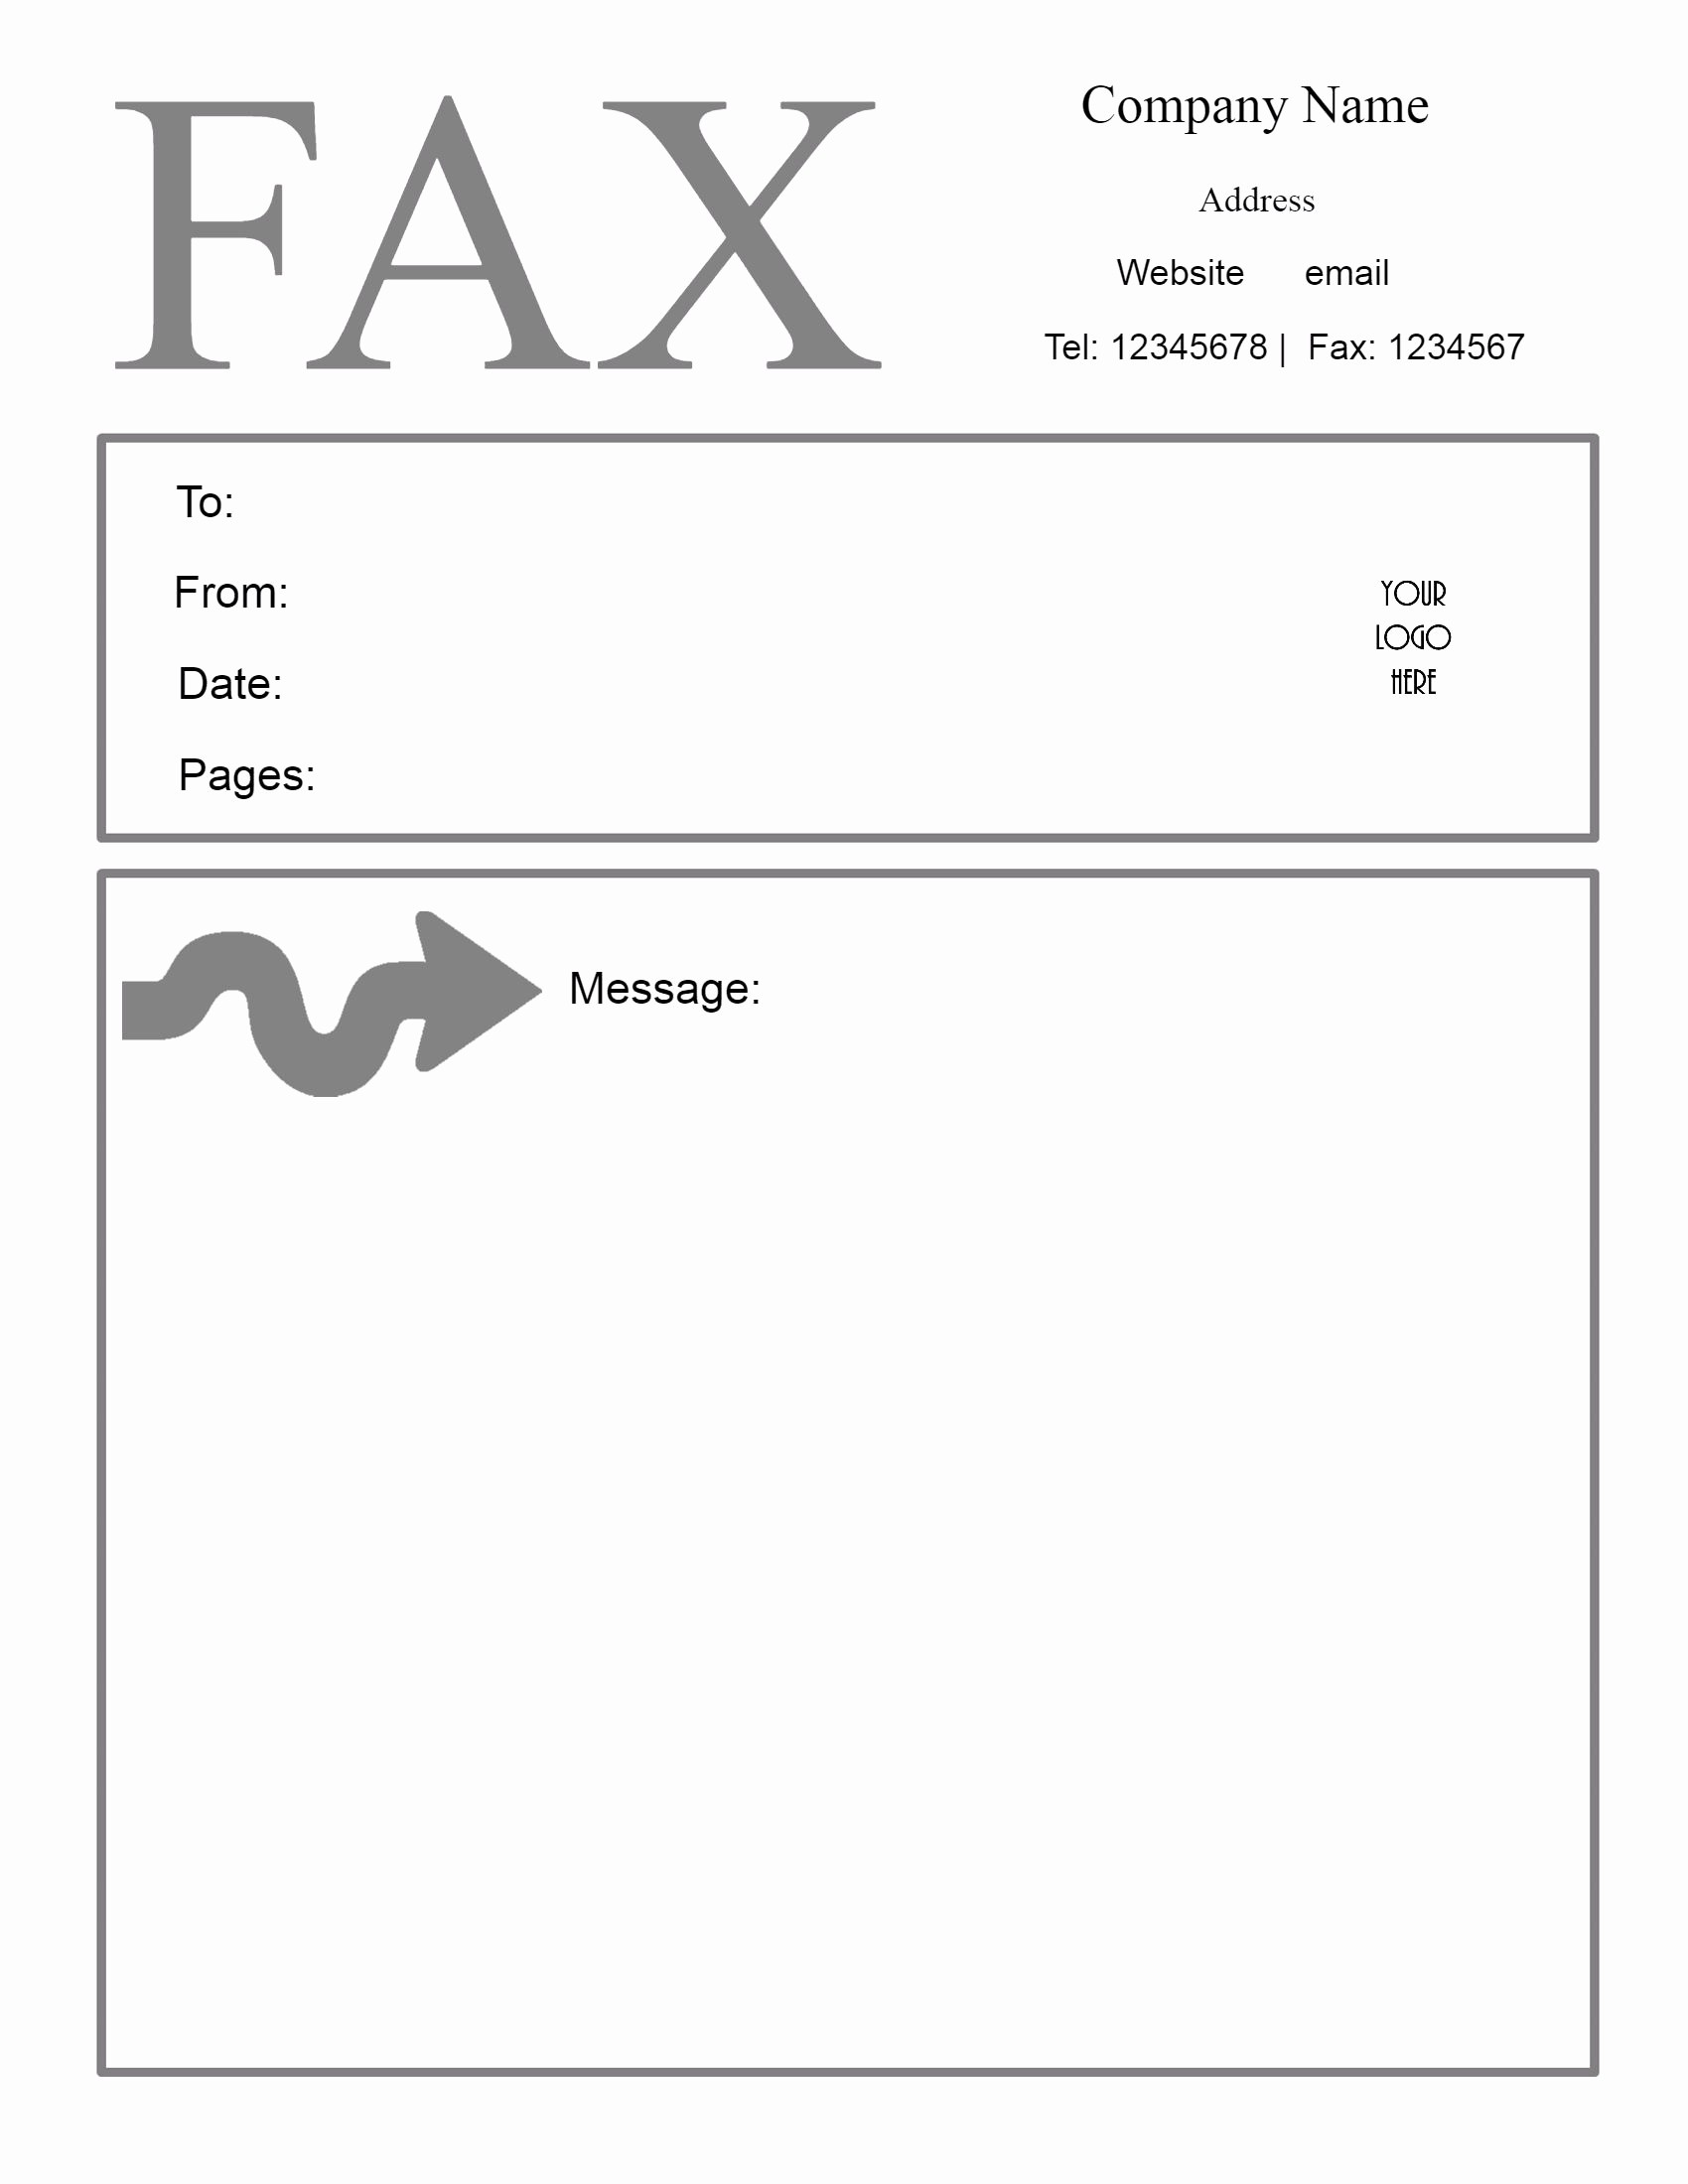 Fax Cover Sheet Sample Pdf New Free Fax Cover Sheet Template